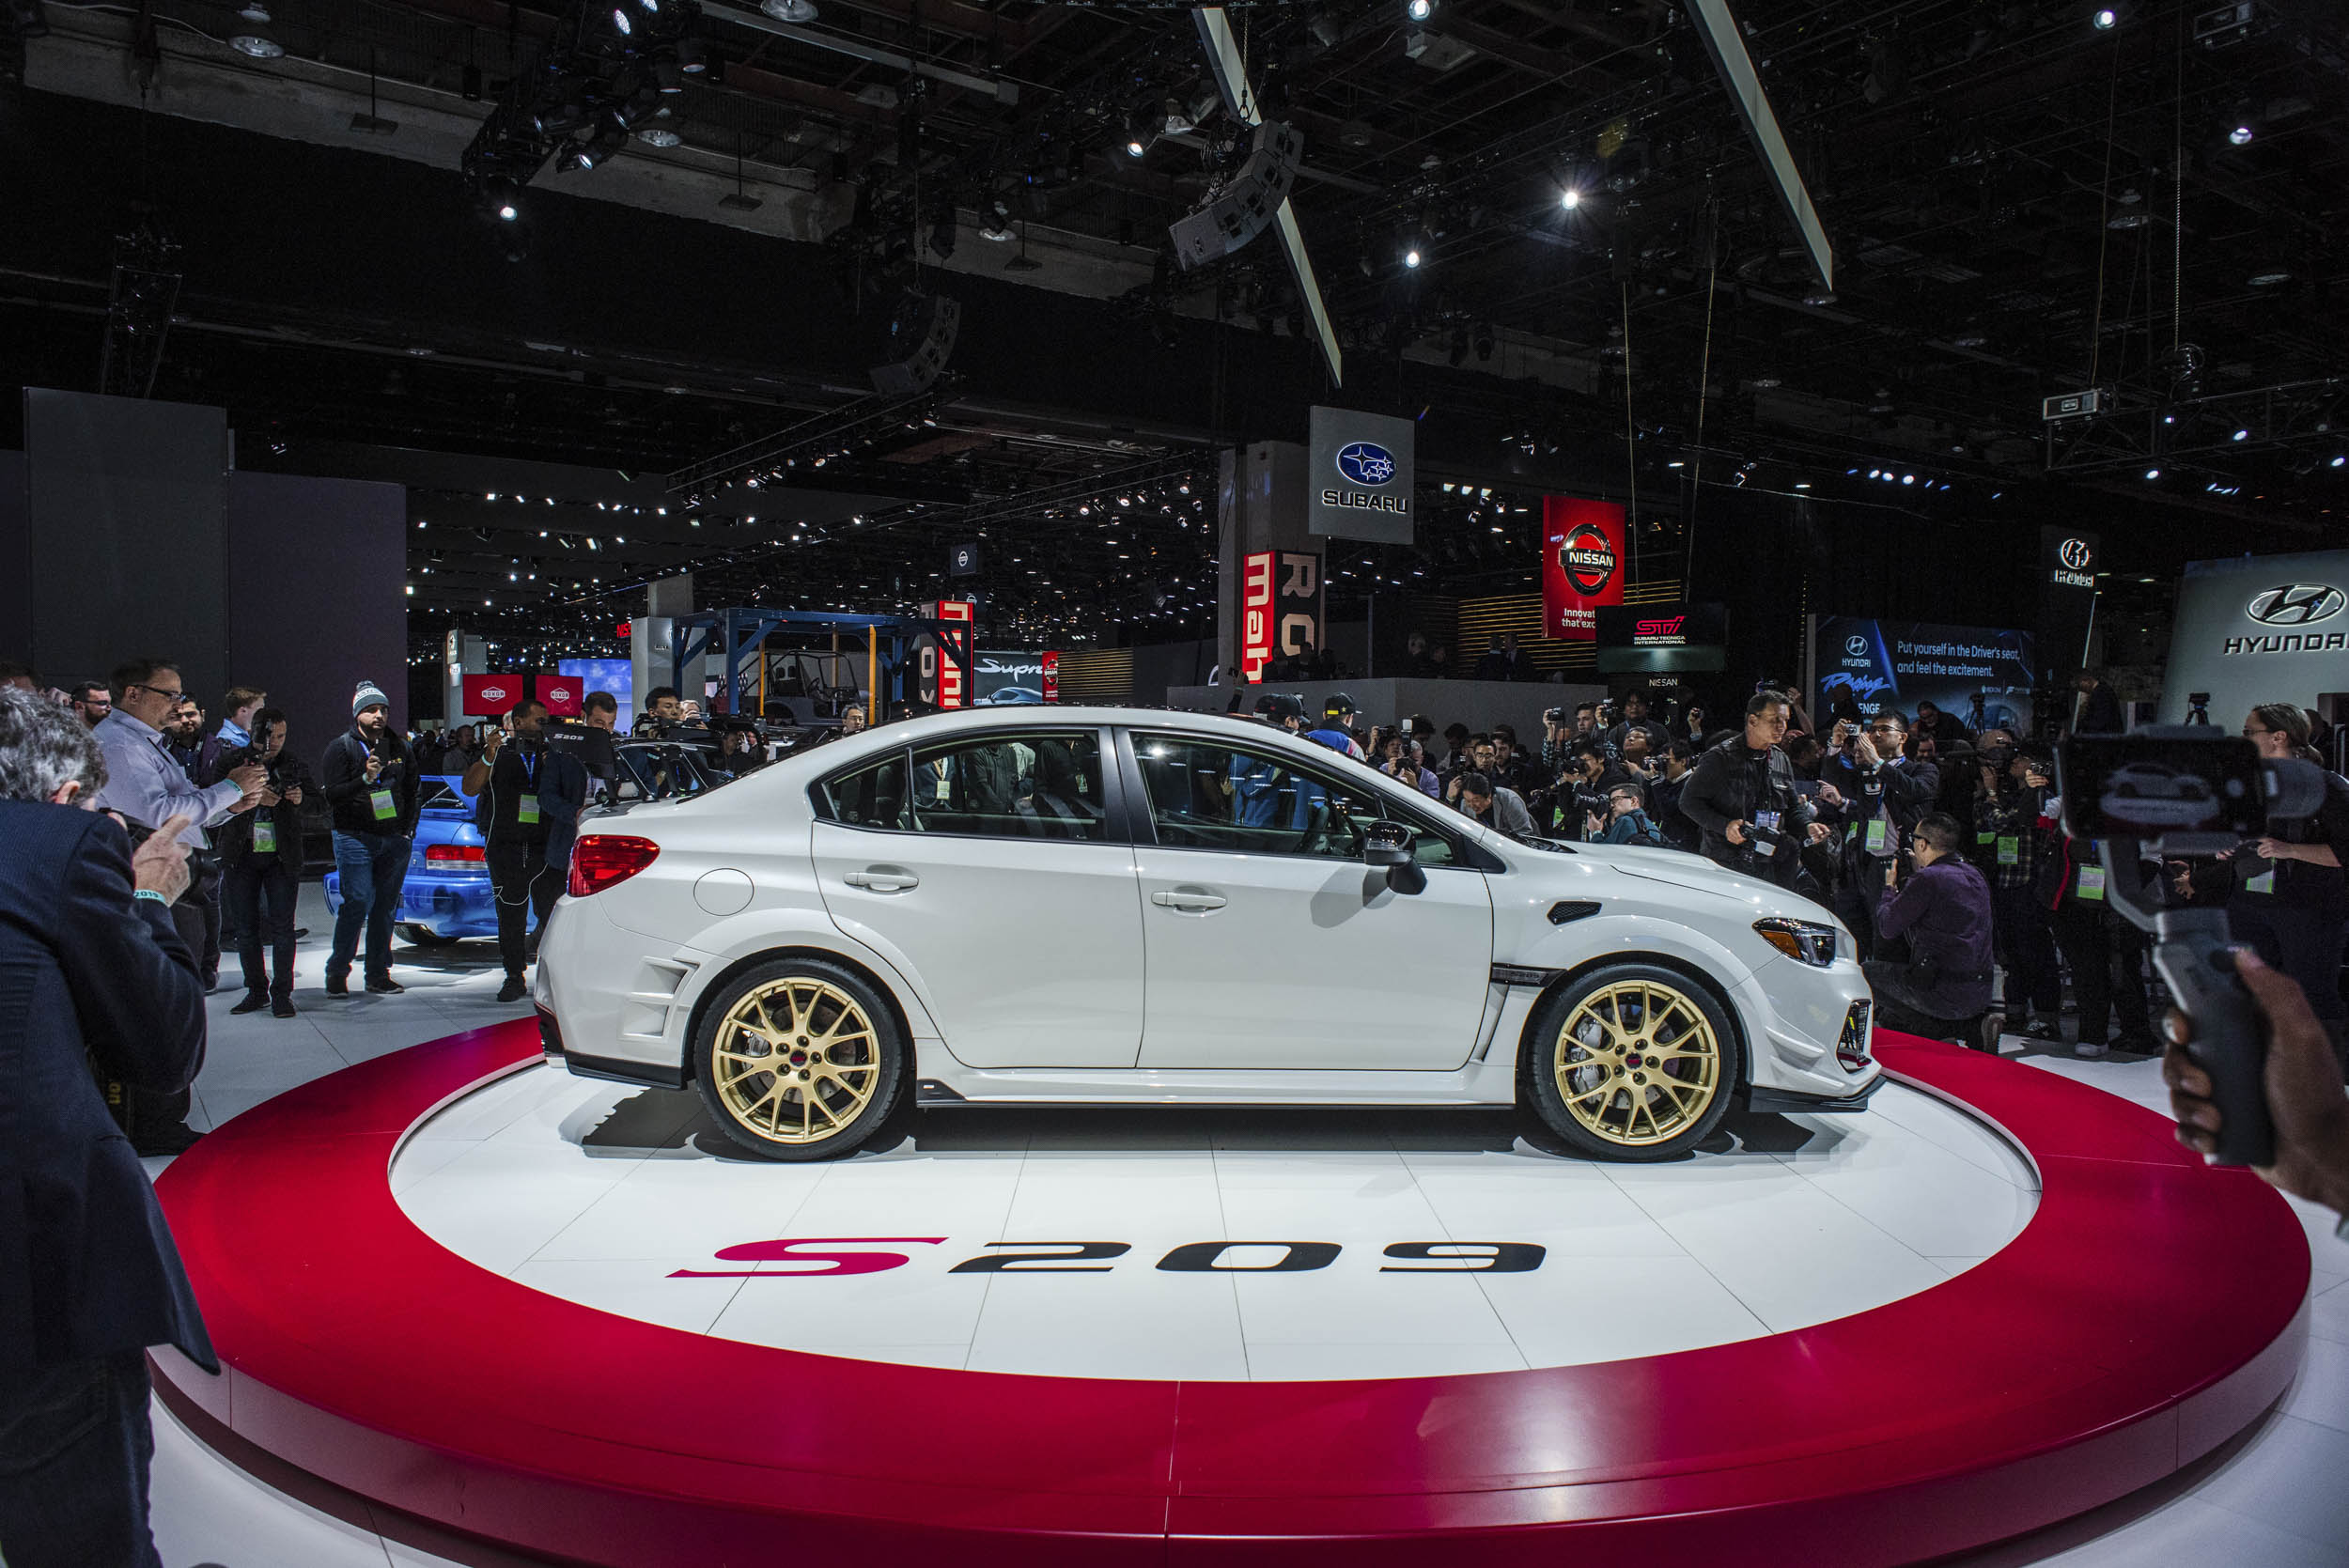 2020 Subaru WRX STI S209 profile side profile at the NAIAS